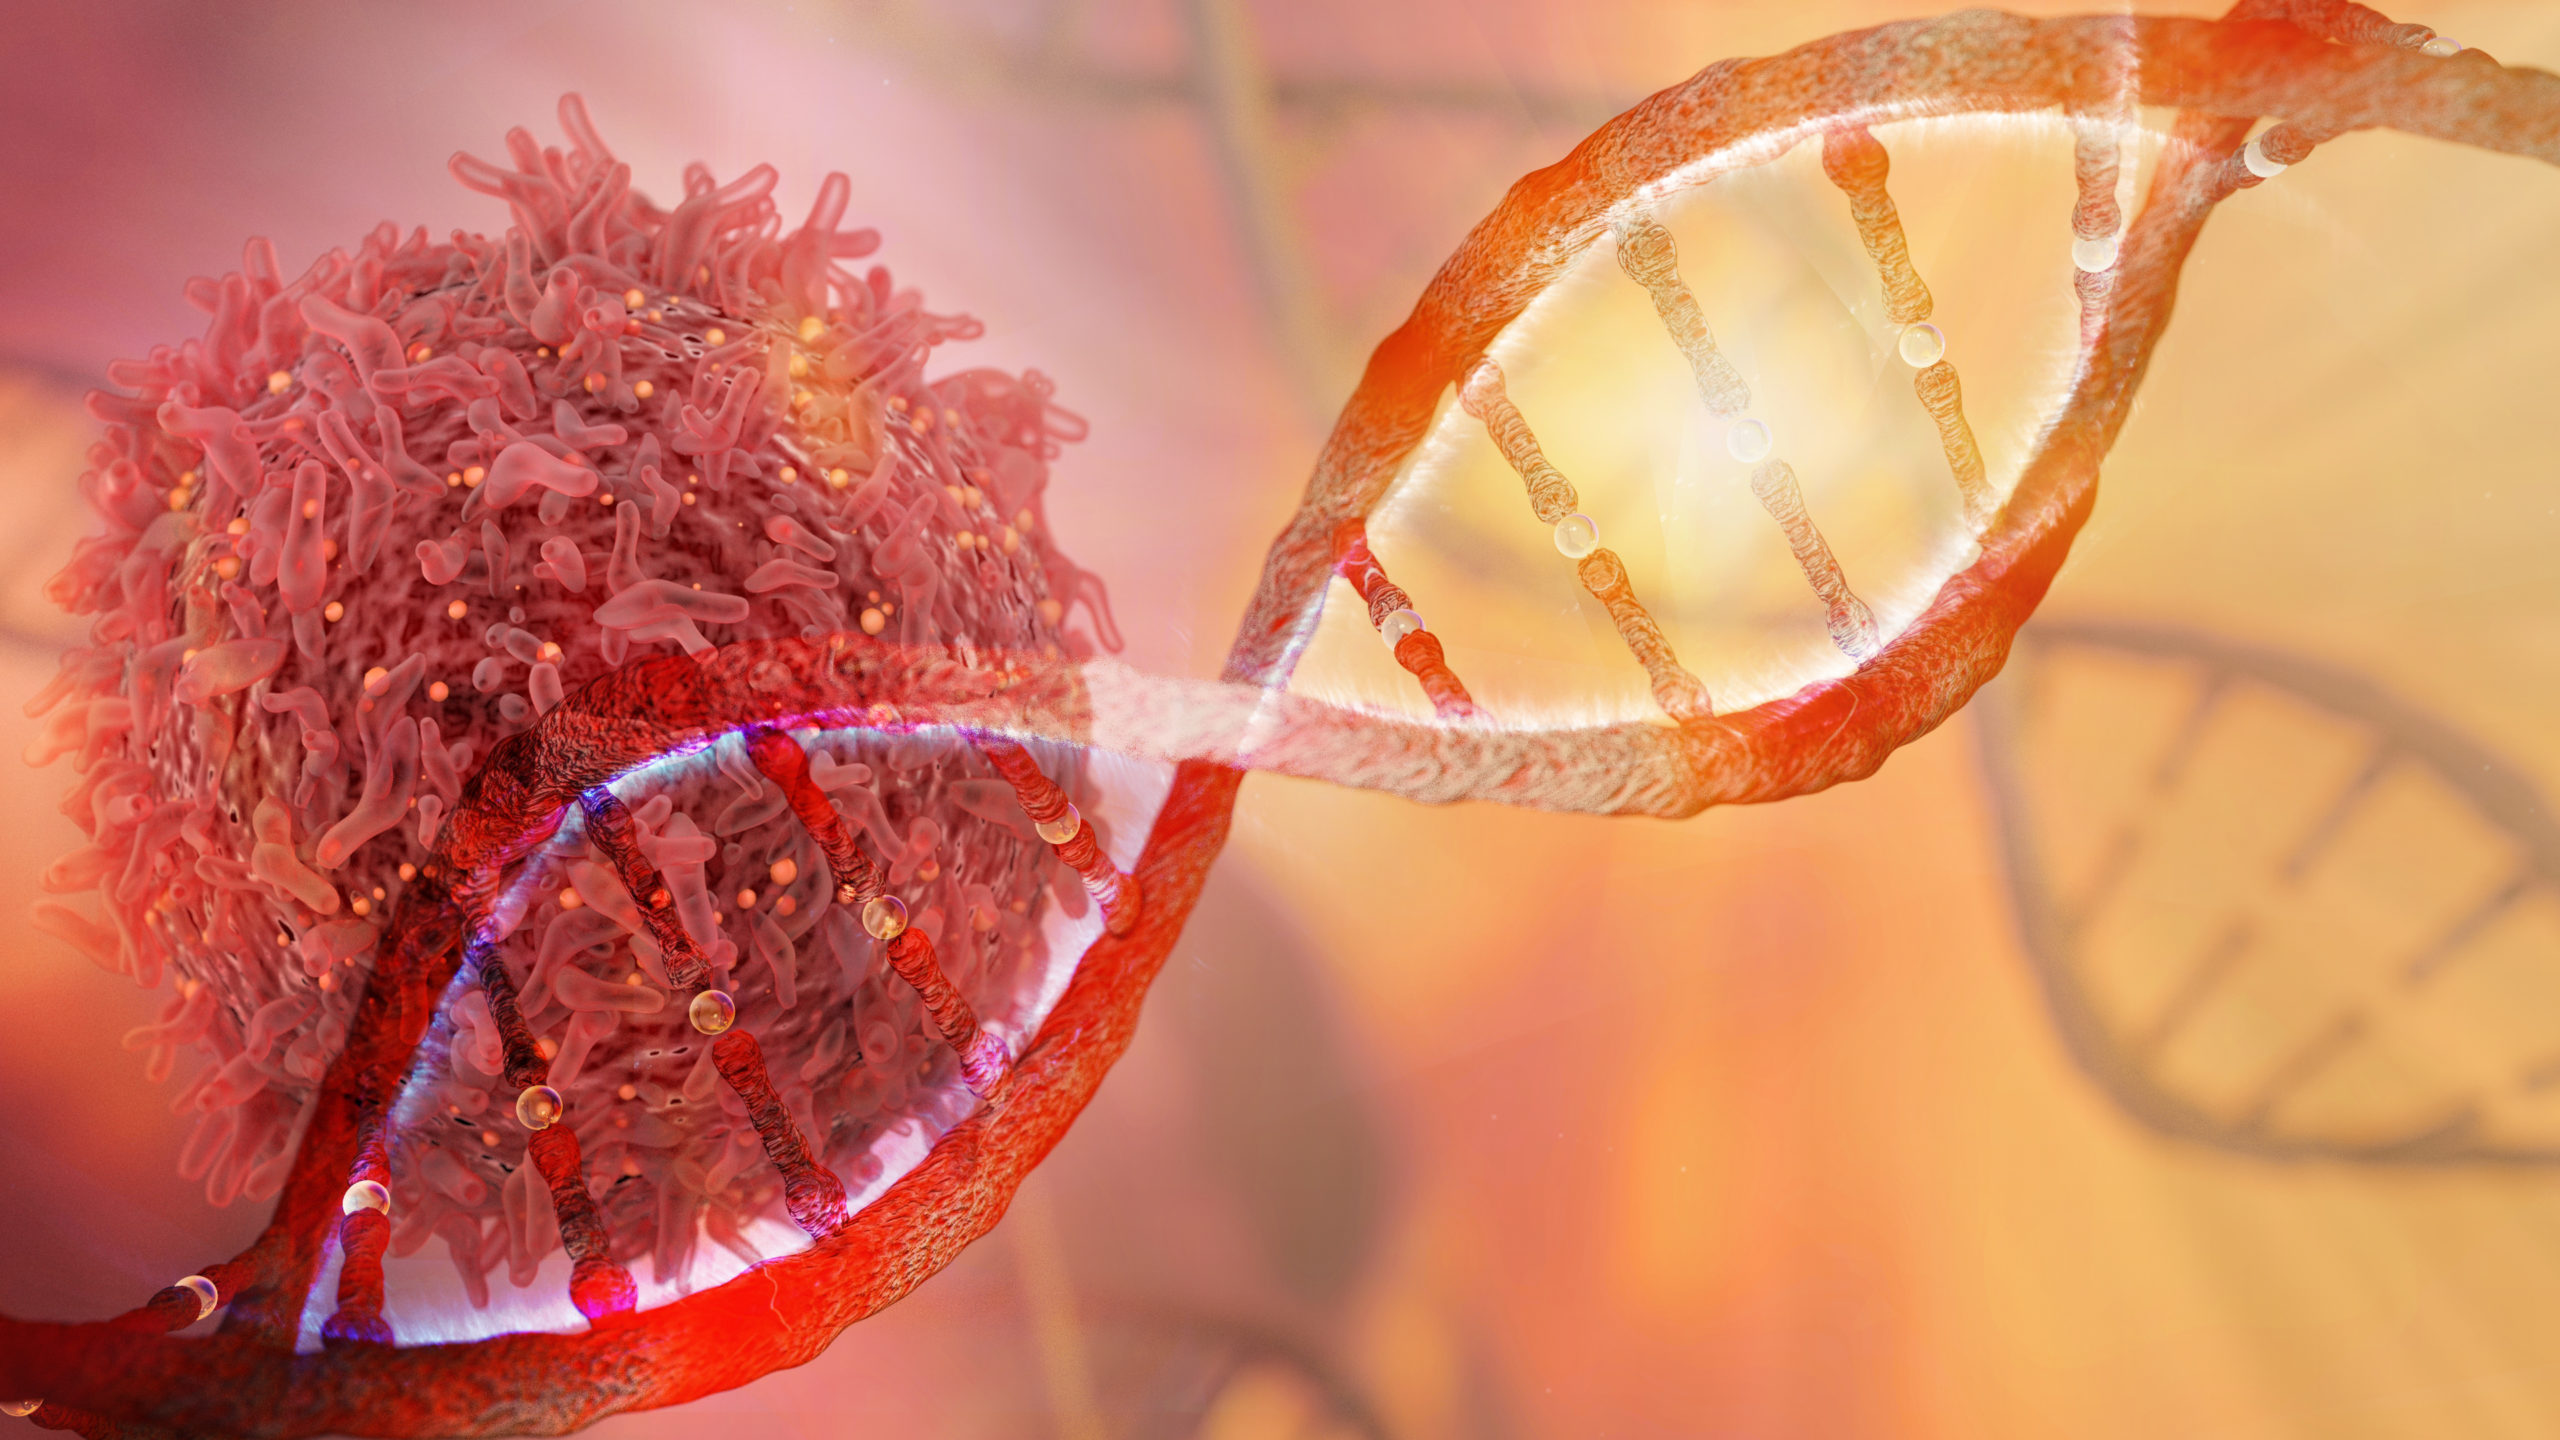 Researchers Unravel Four-Stranded DNA's Role in Breast Cancer